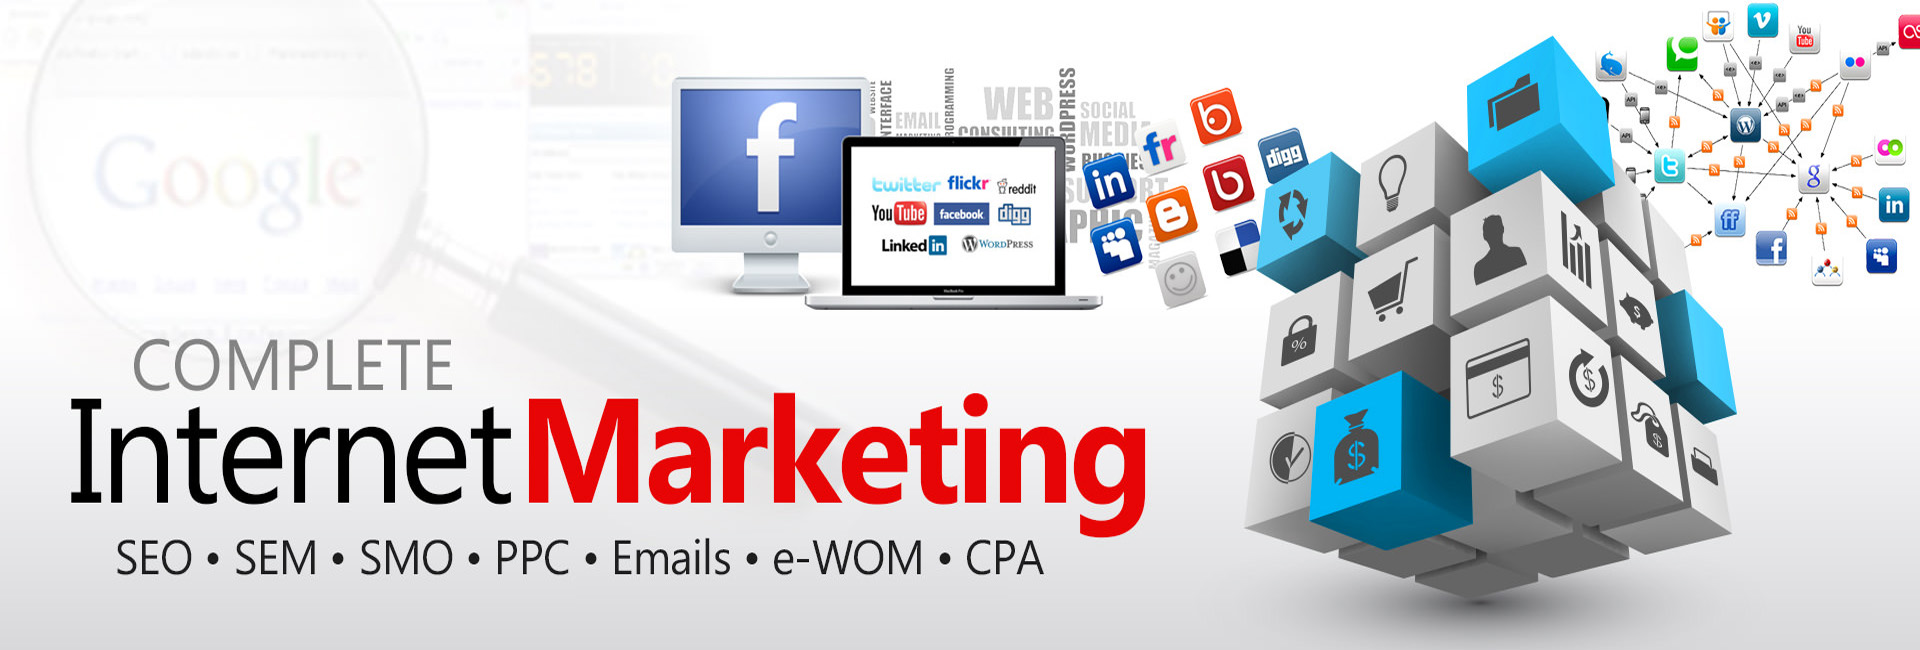 internet-marketing12